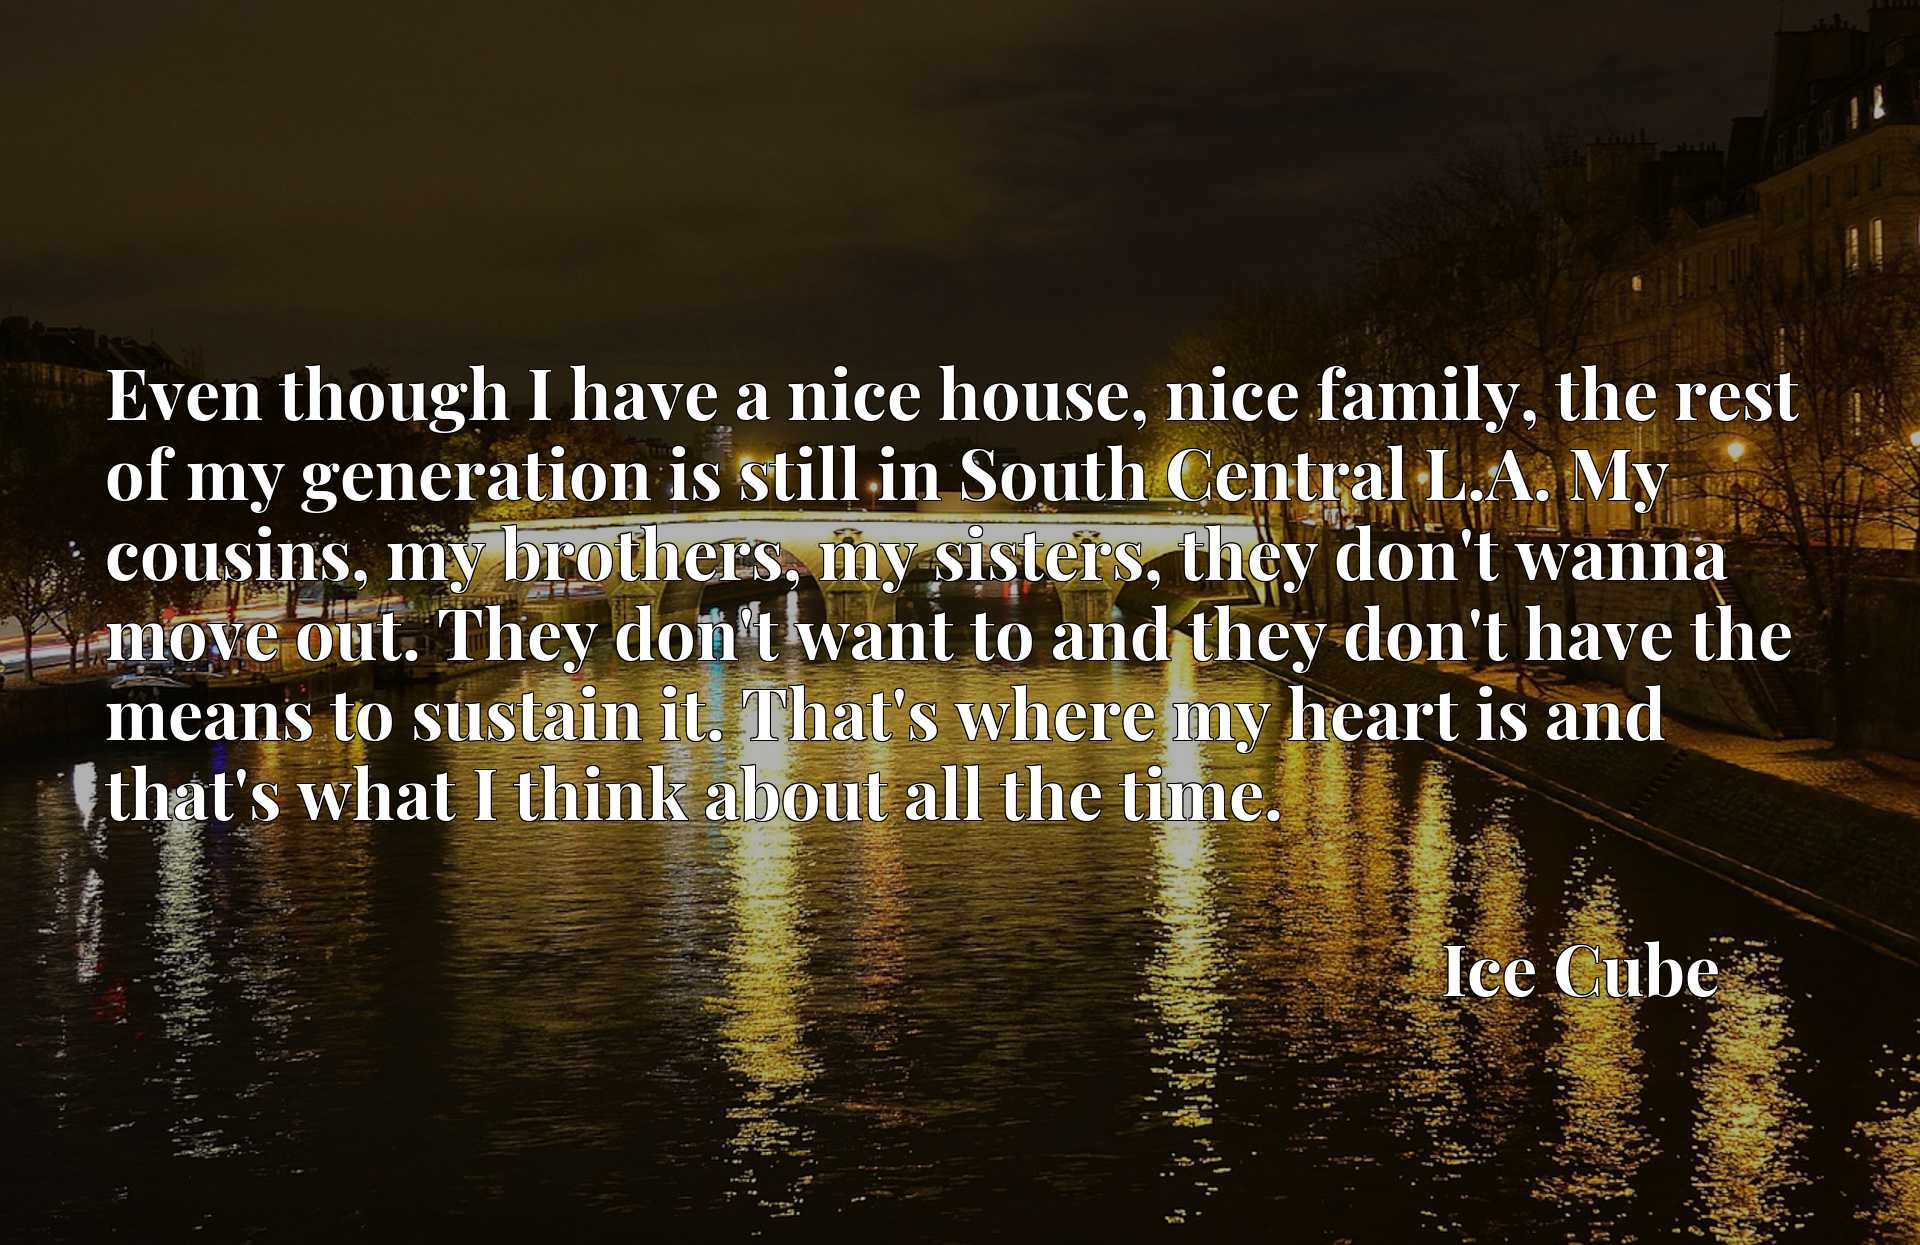 Even though I have a nice house, nice family, the rest of my generation is still in South Central L.A. My cousins, my brothers, my sisters, they don't wanna move out. They don't want to and they don't have the means to sustain it. That's where my heart is and that's what I think about all the time.